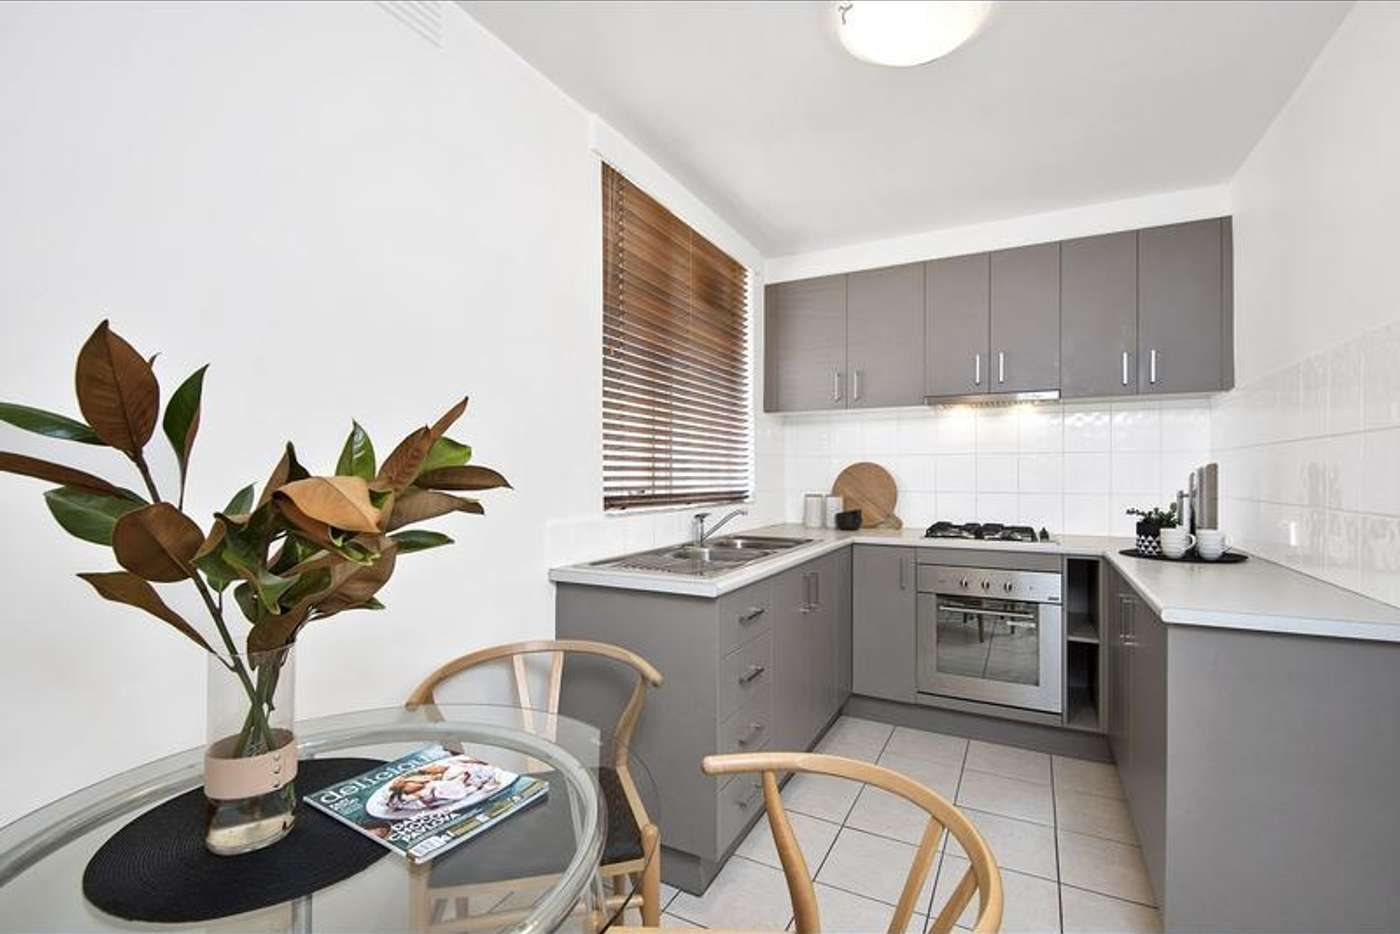 Main view of Homely apartment listing, 18/1 Duncraig Avenue, Armadale VIC 3143